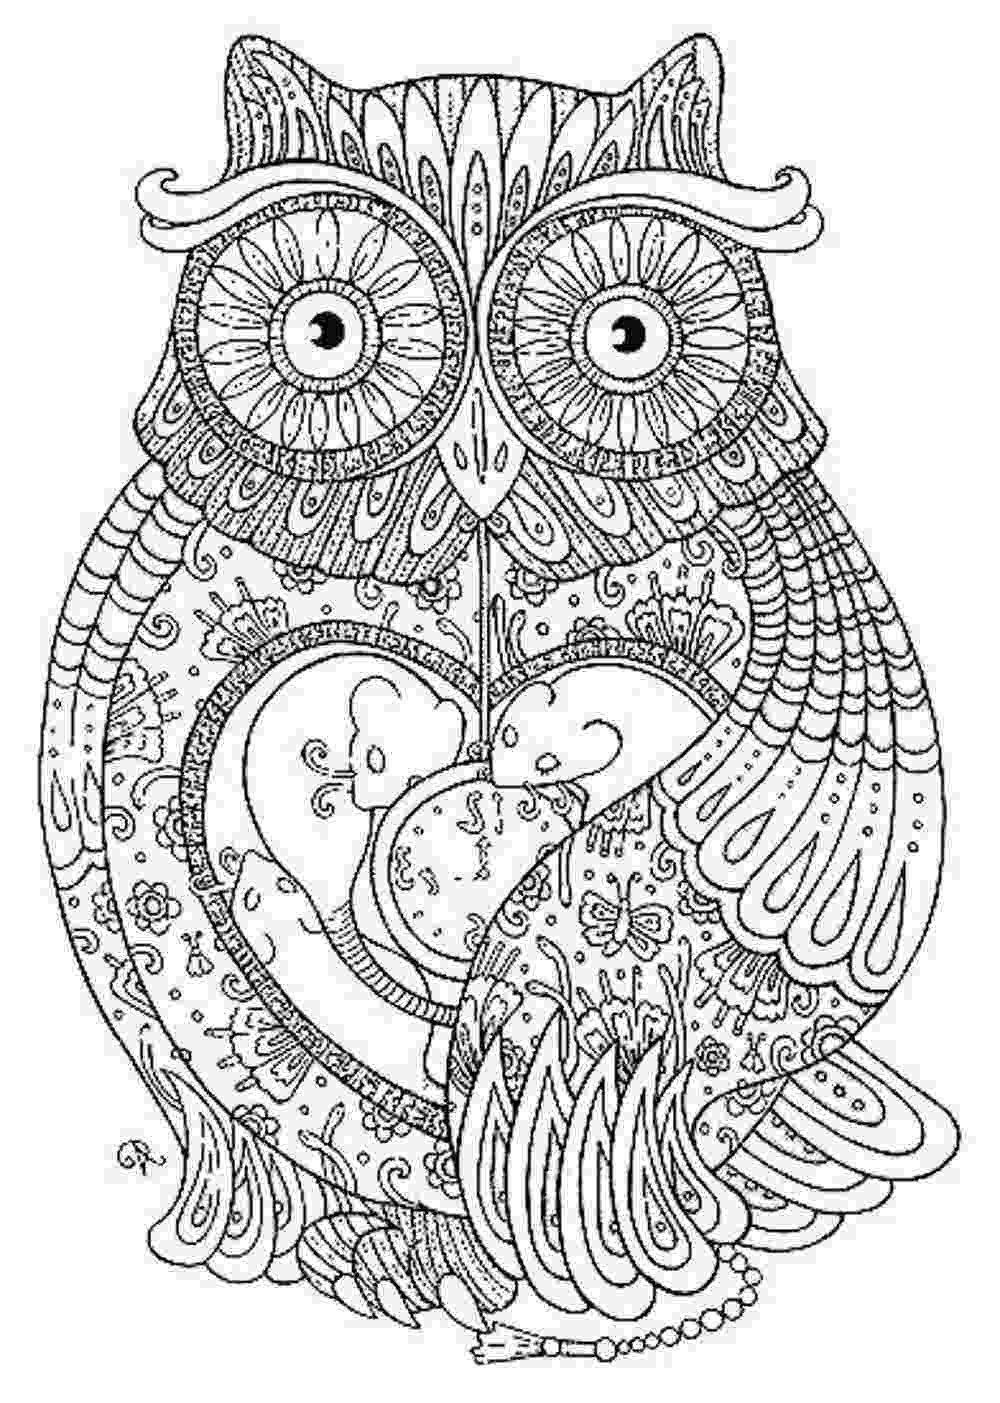 animal colouring pages free adult coloring pages animals best coloring pages for kids colouring animal pages free